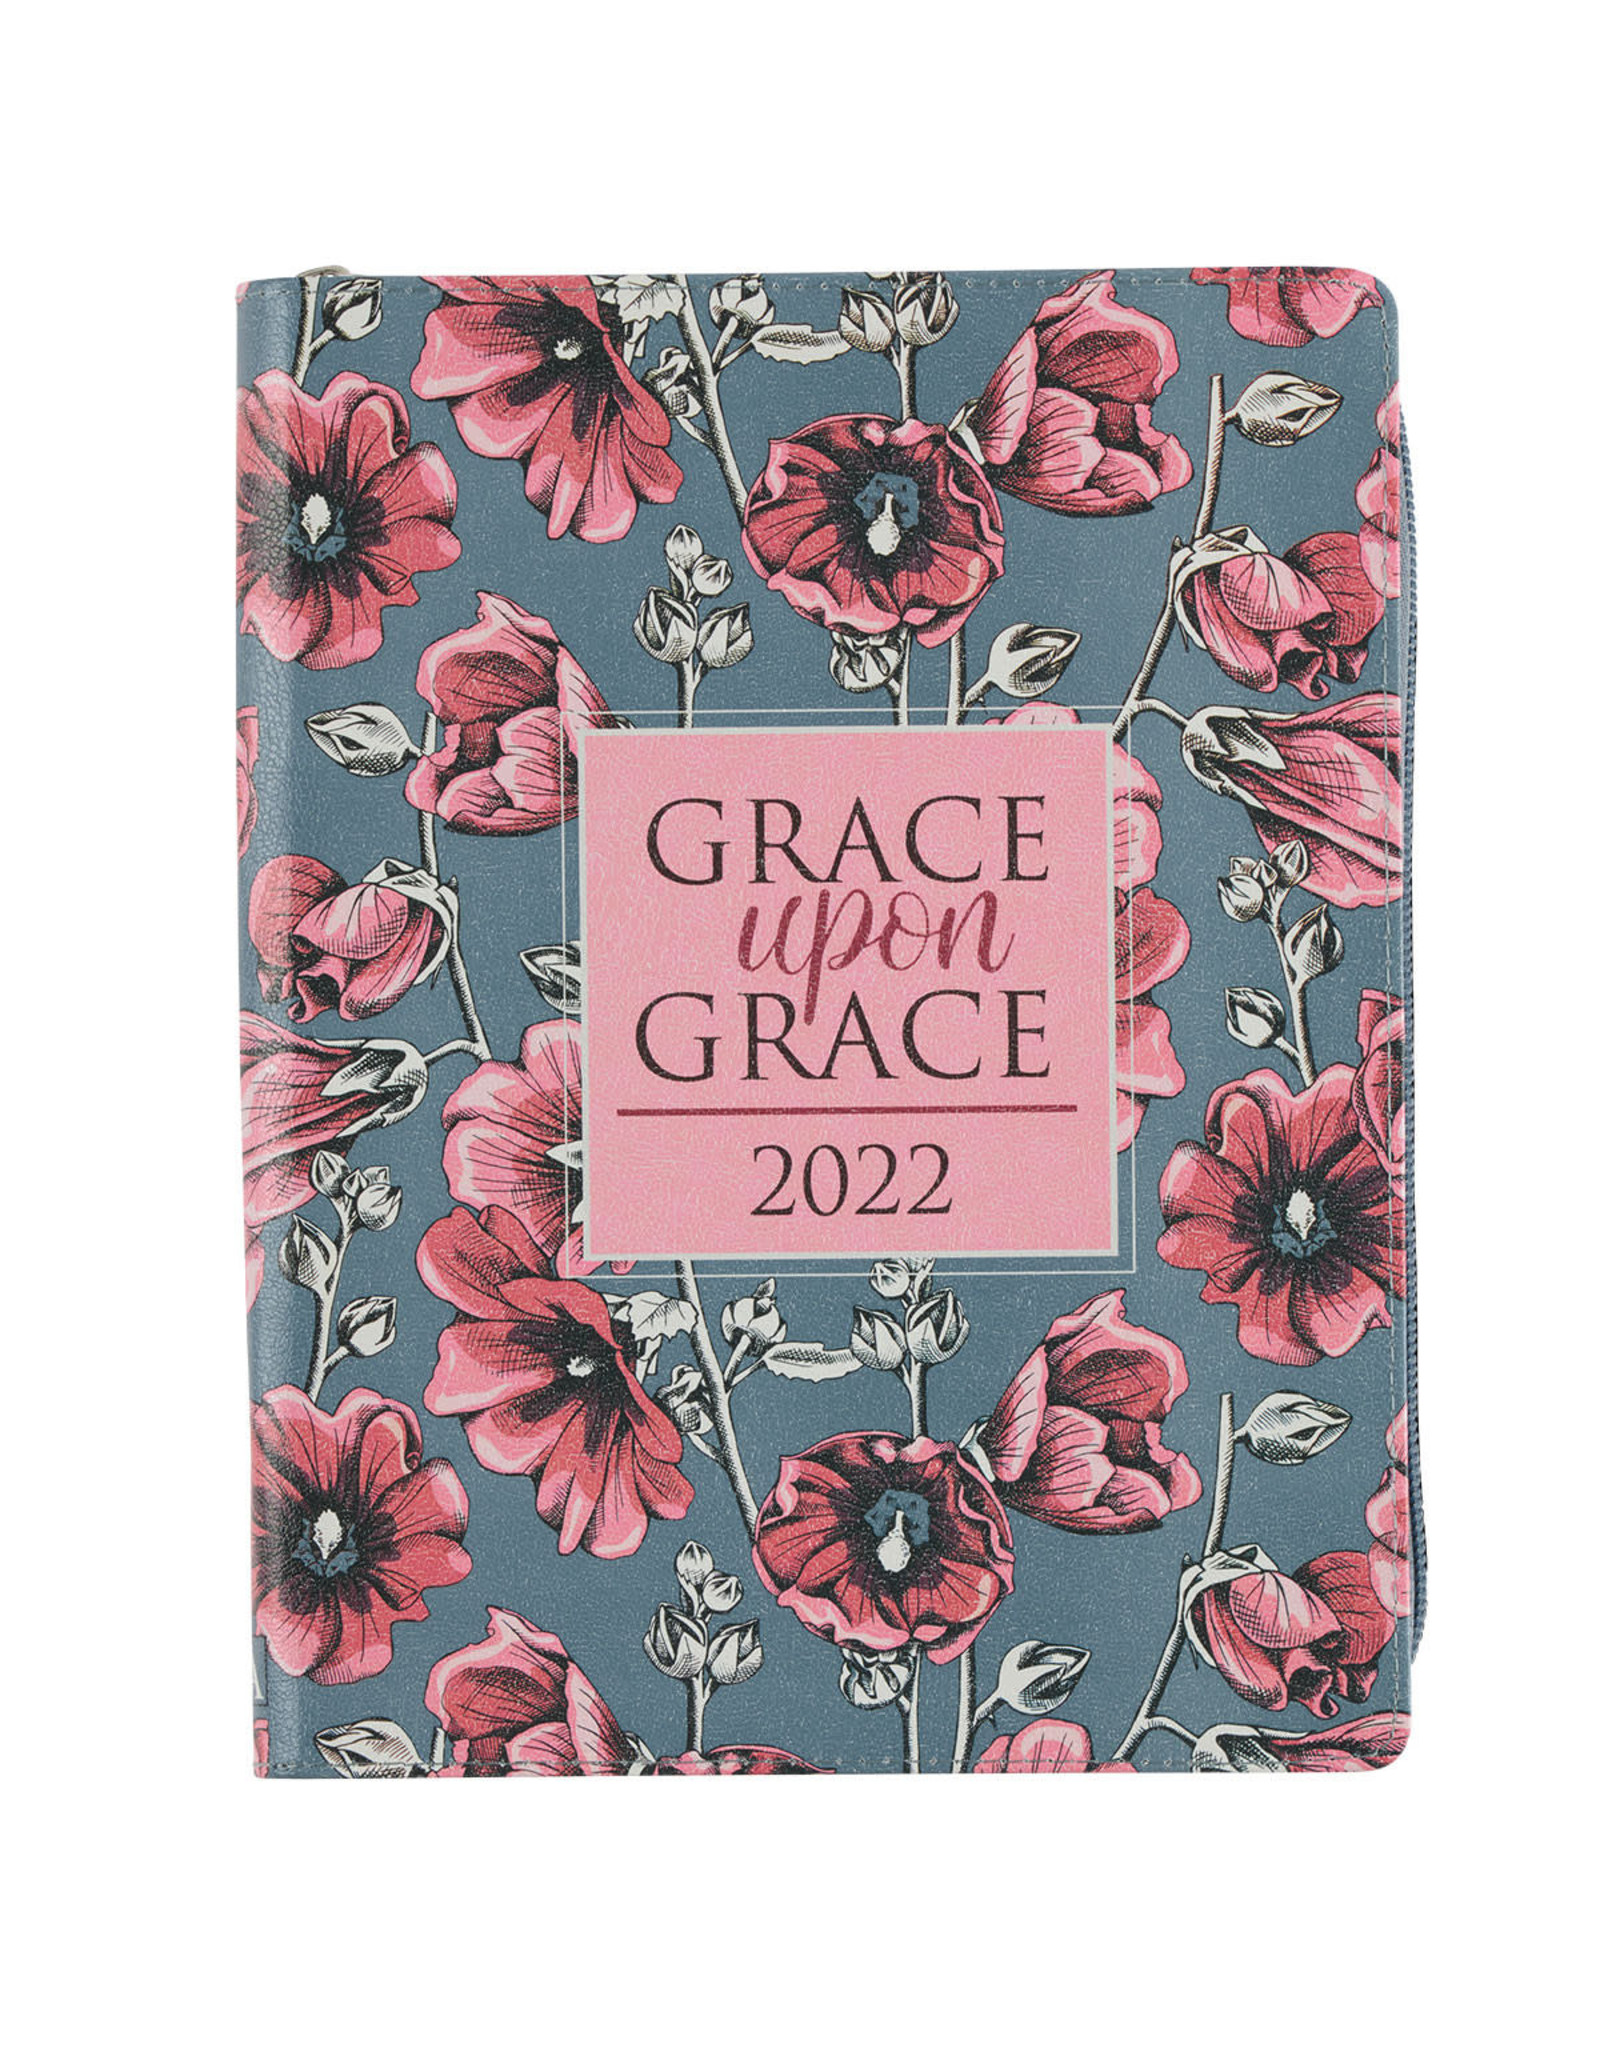 2022 Grace Upon Grace Large Floral Faux Leather 18-month Planner For Women